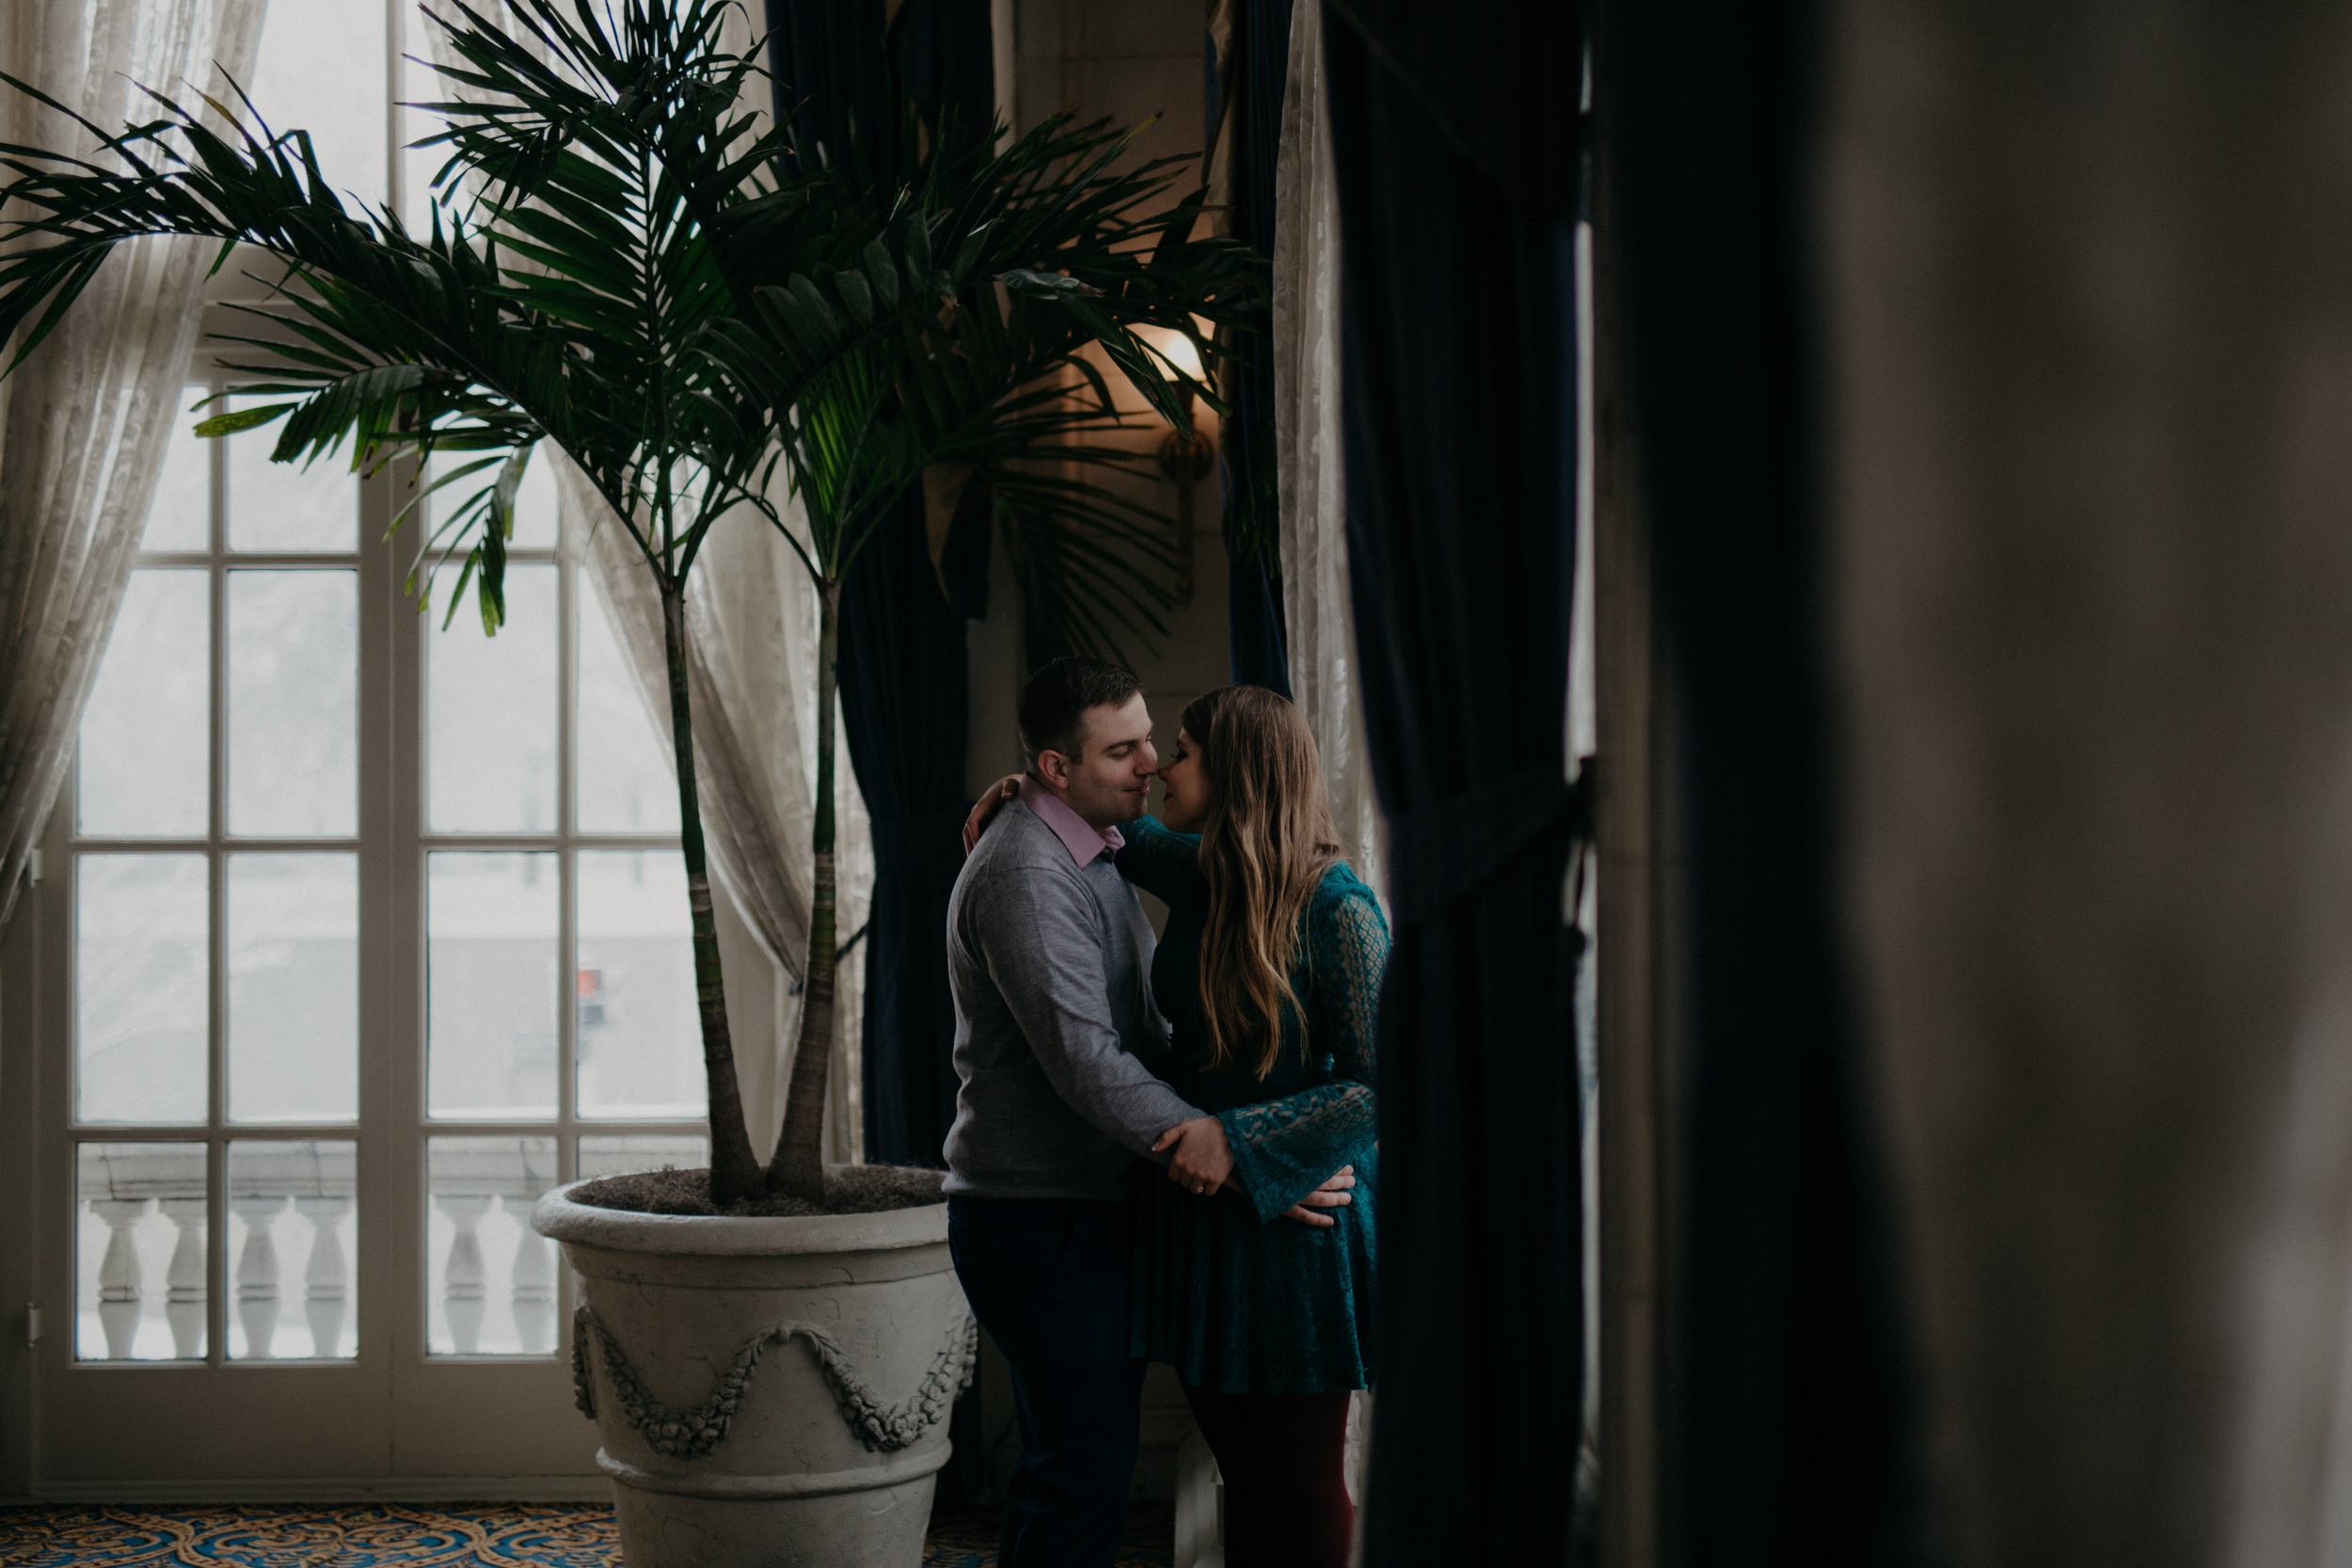 Snowy Engagement Session in Nashville - Photography Anthology (23 of 35).jpg